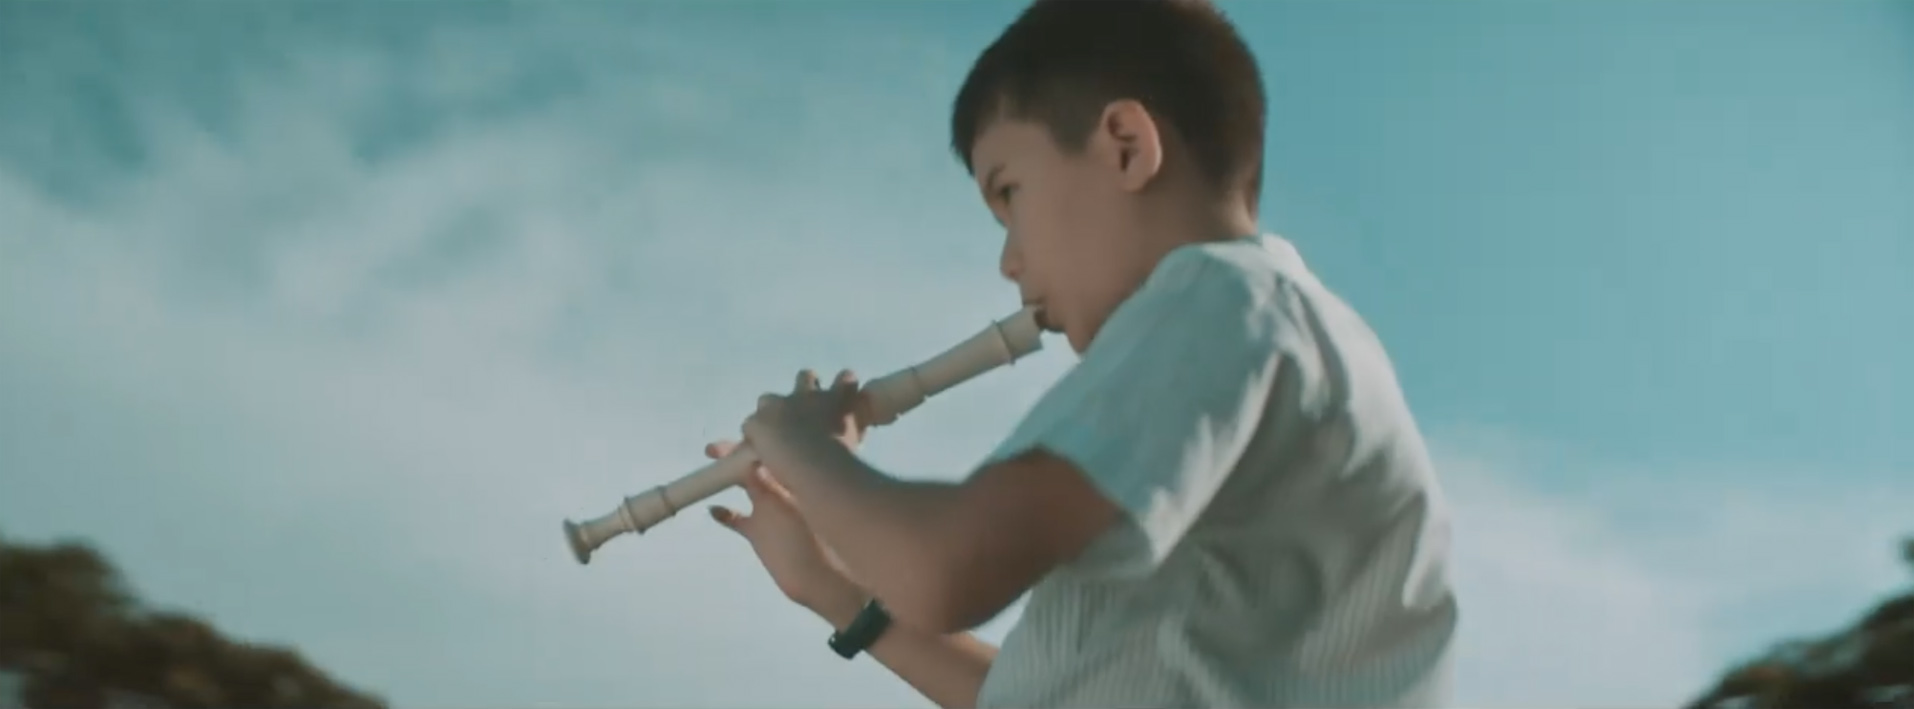 StarHub releases music video paying homage to Singapore's early-day heroines for the country's Bicentennial and 54th birthday